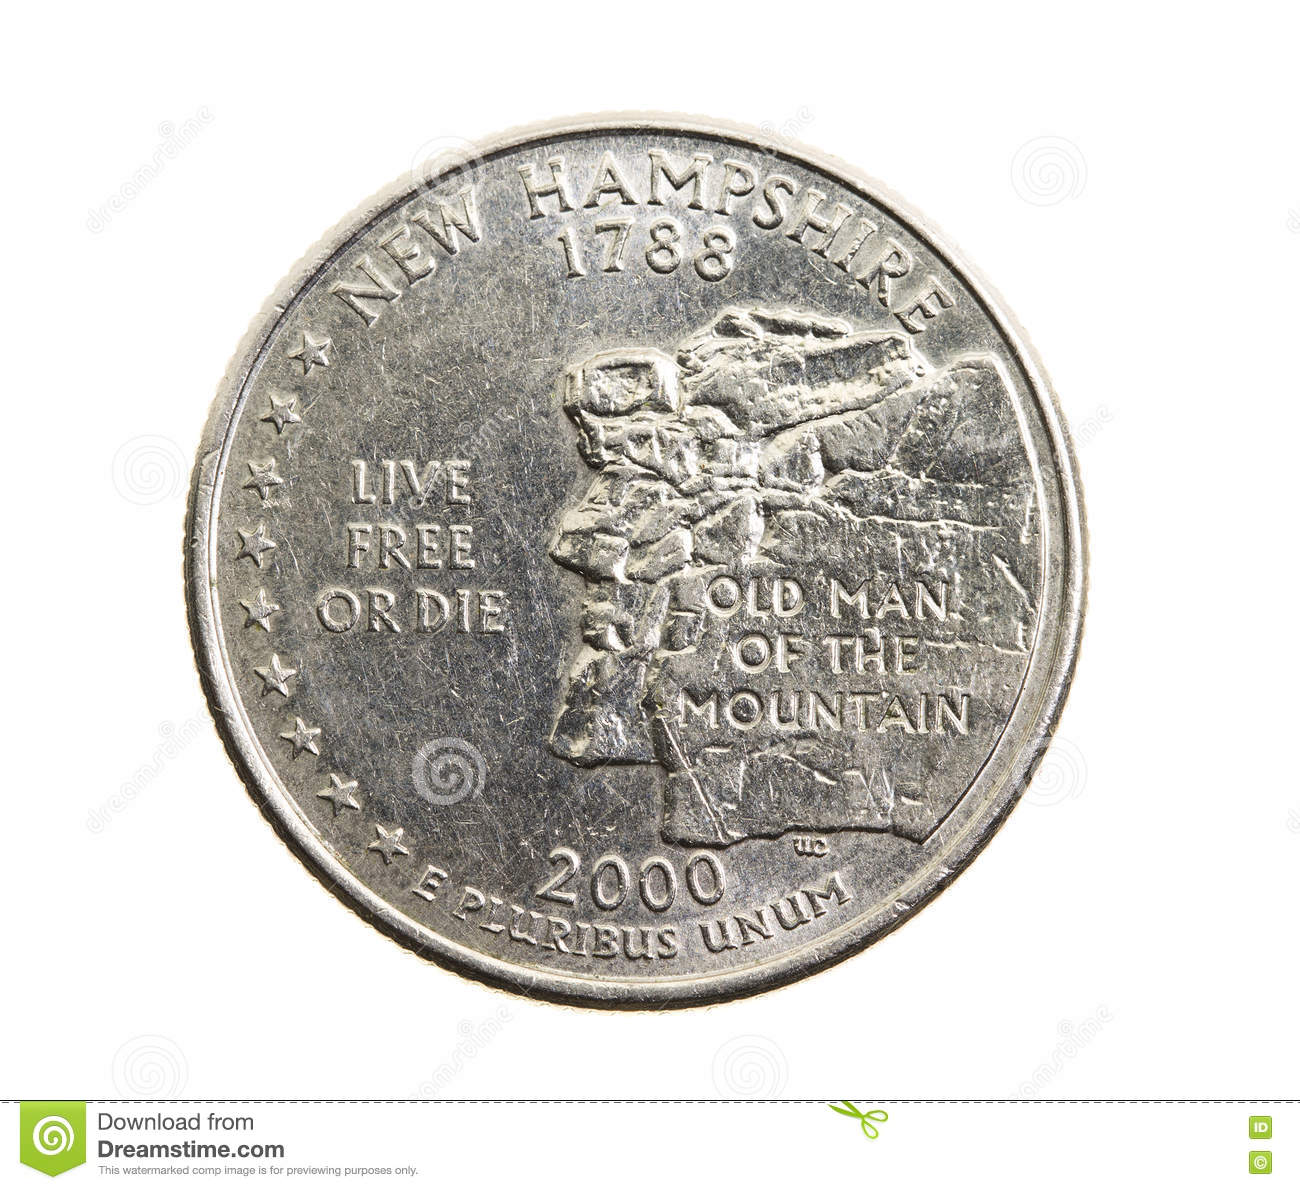 Coin in a quarter of the US dollar